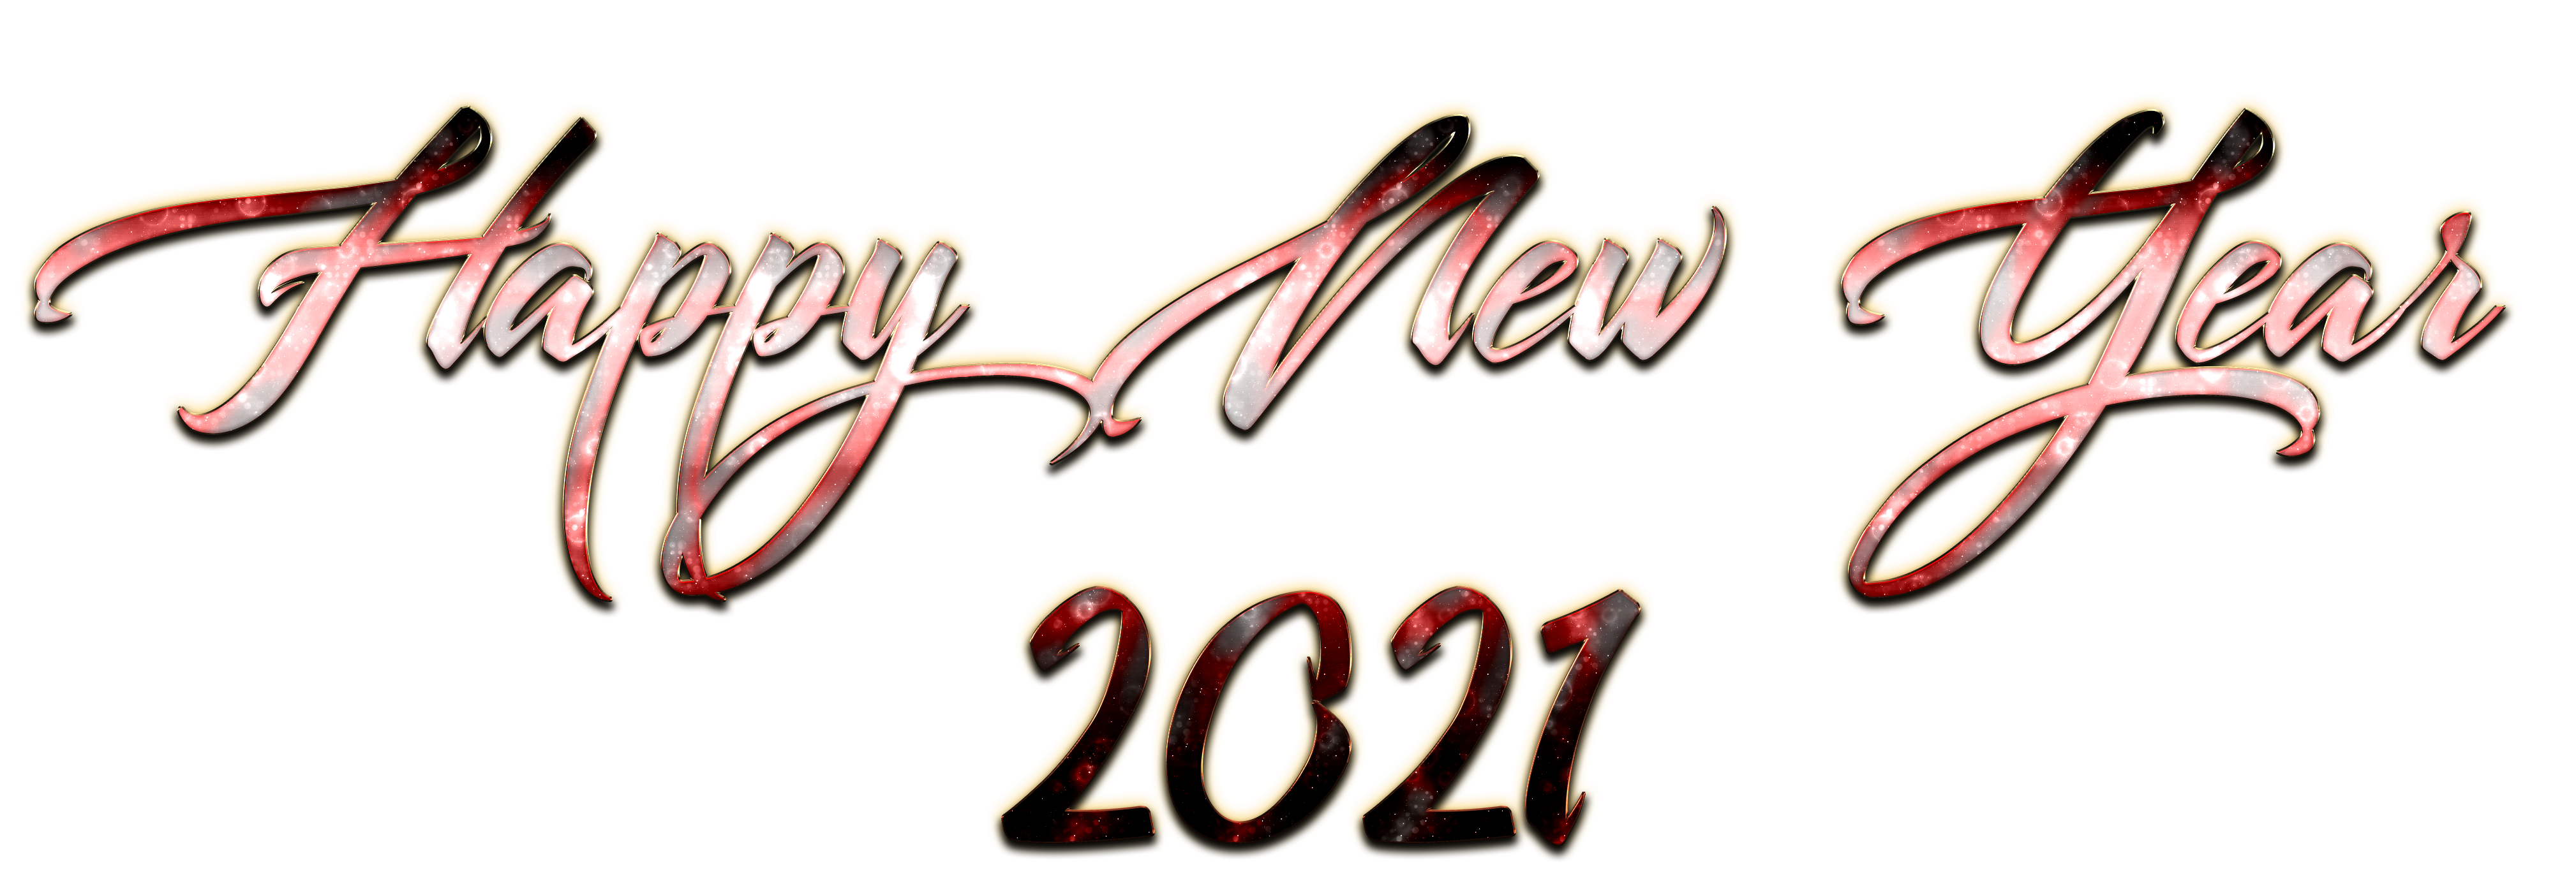 2021 happy new year decoration png #41566